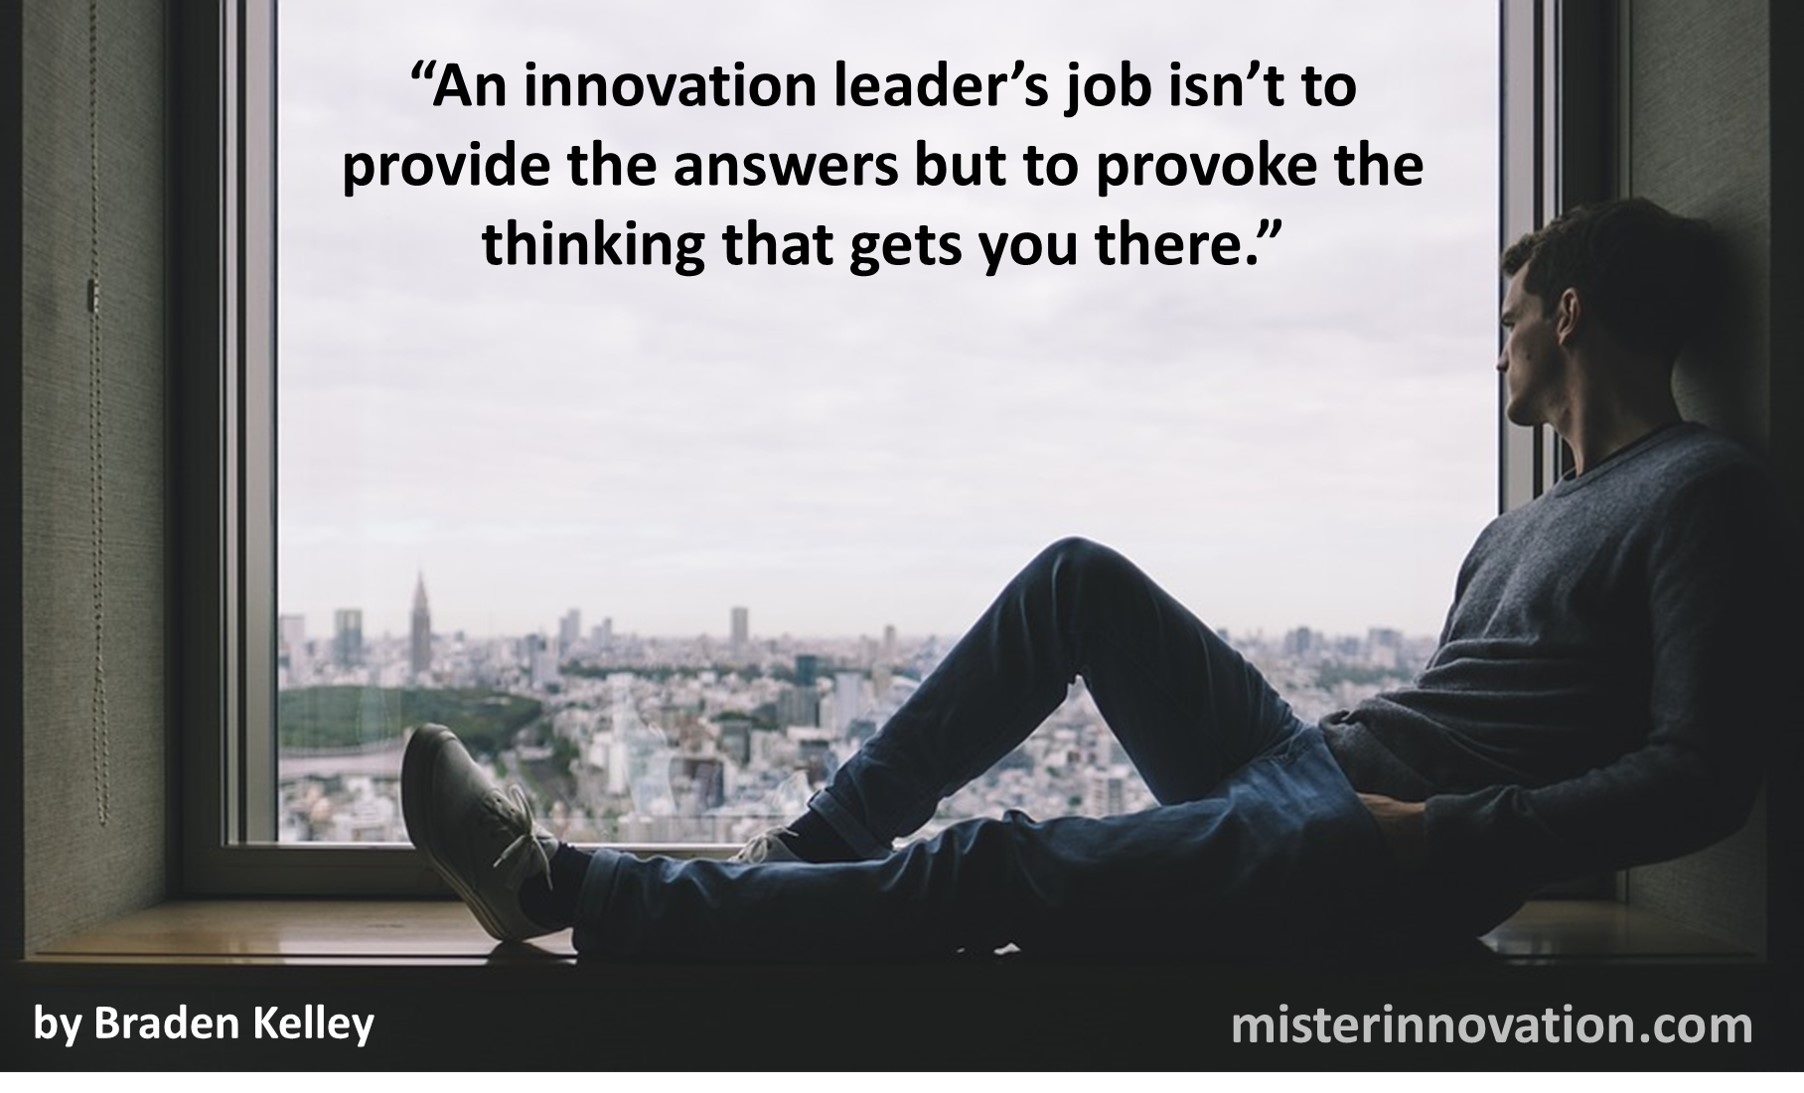 Innovation Leader's Purpose Quote from Braden Kelley